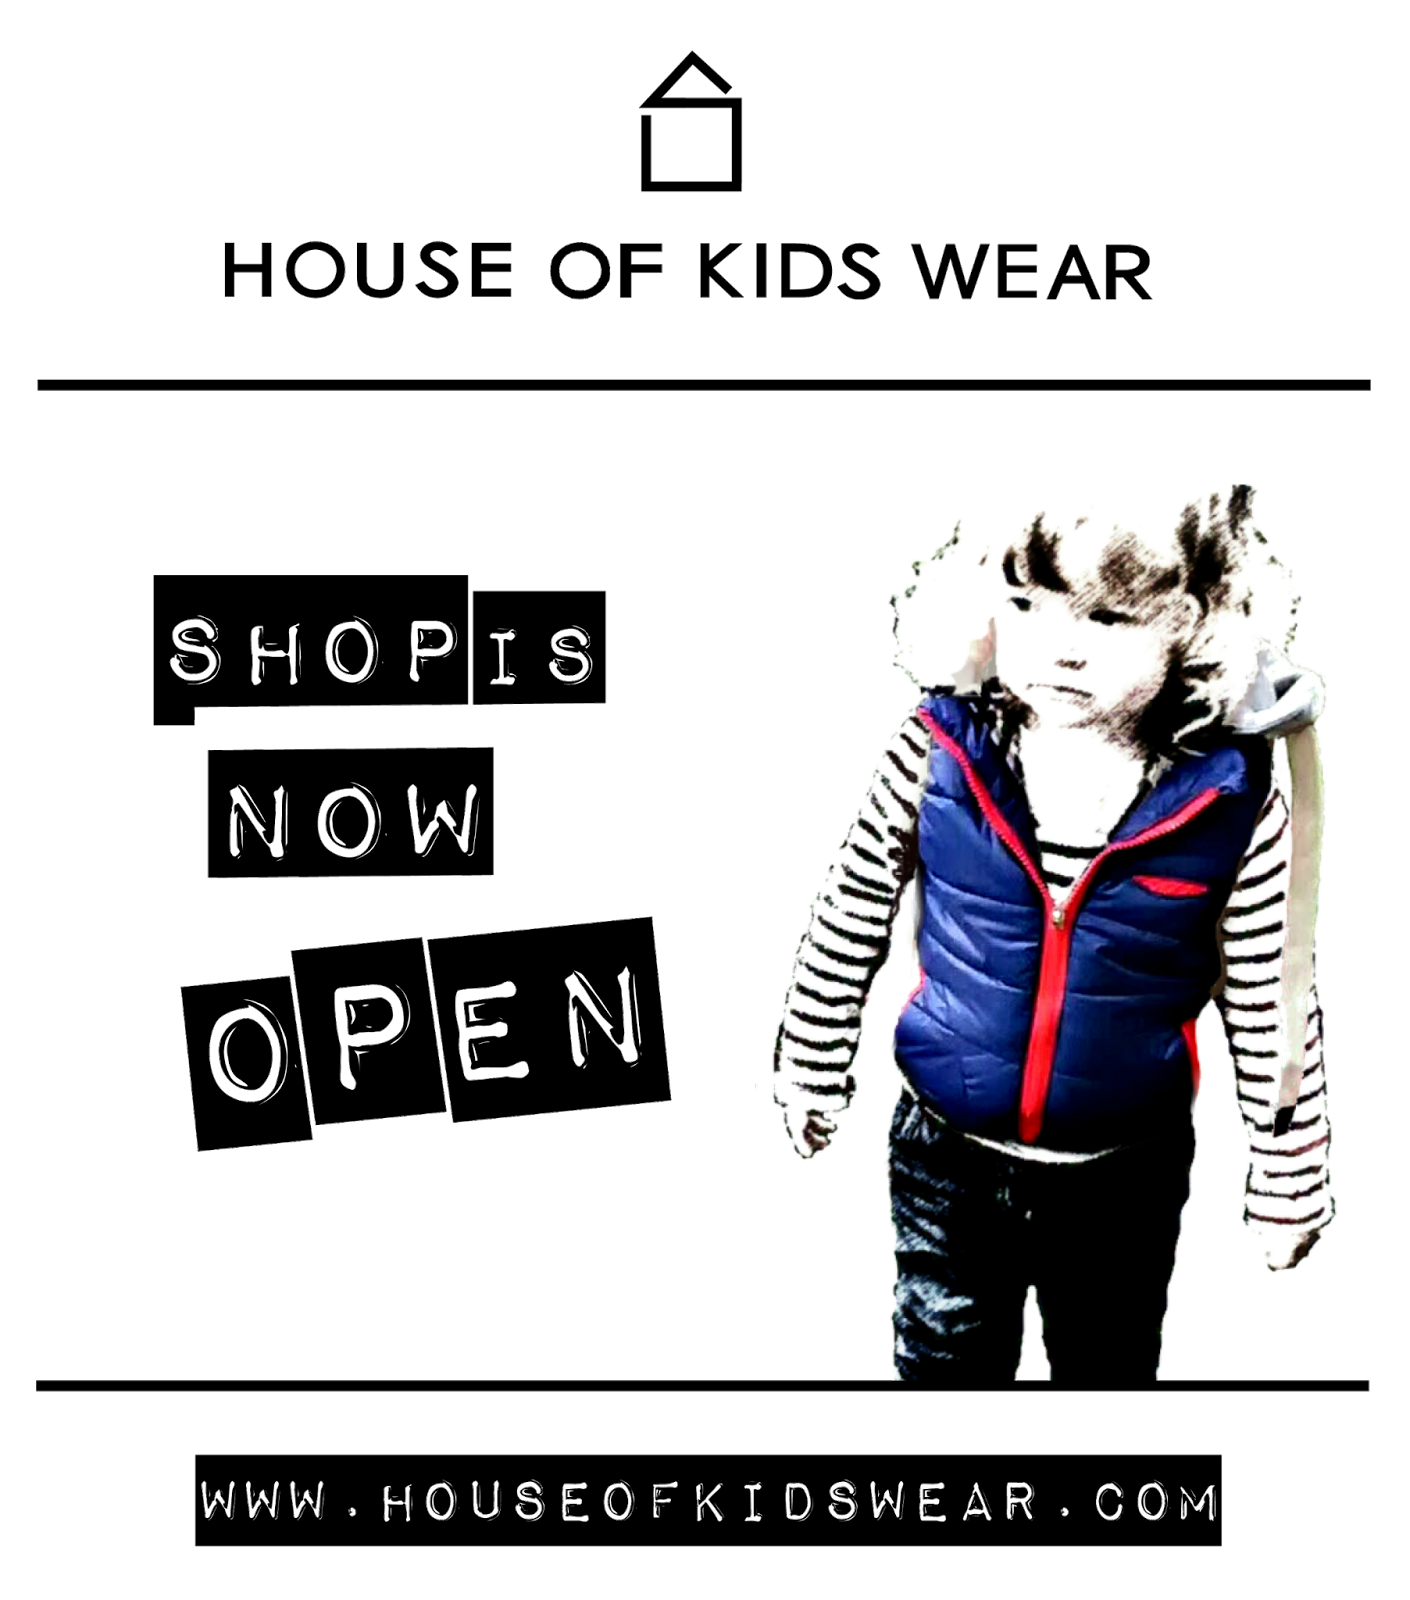 www.houseofkidswear.com Clothes for Kids